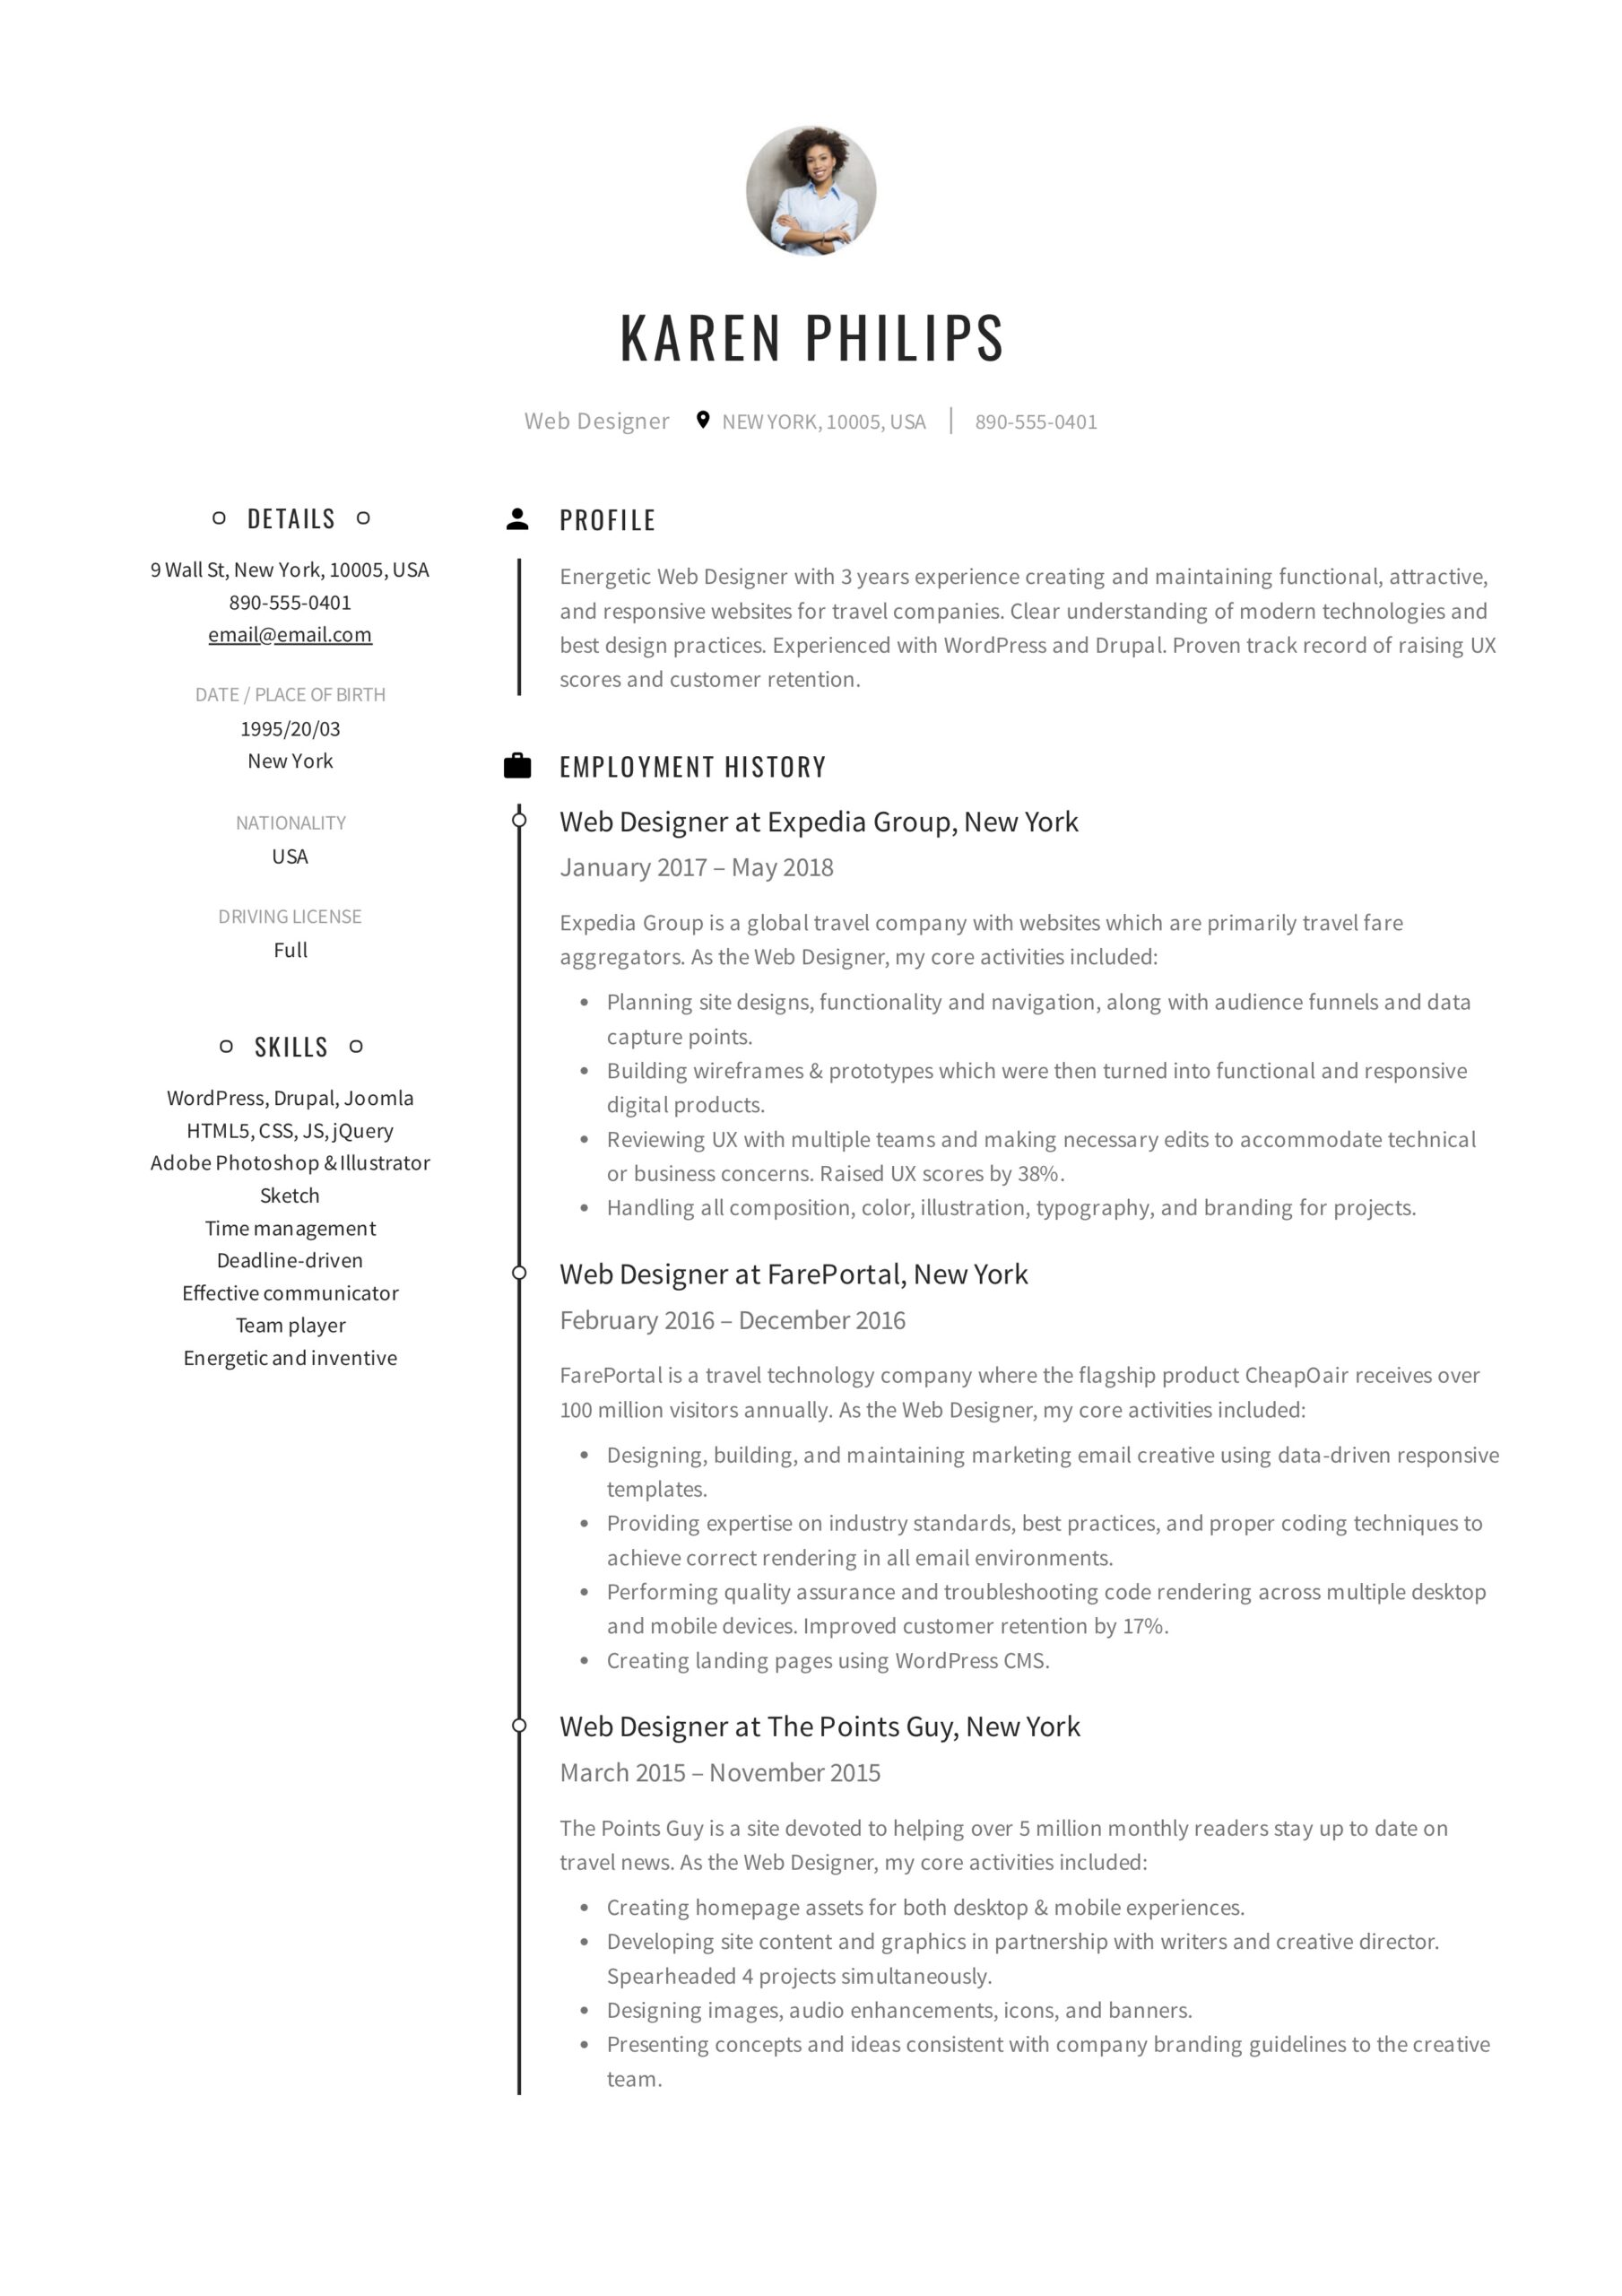 resume templates pdf word free downloads and guides with one job history karen philips Resume Resume With One Job History